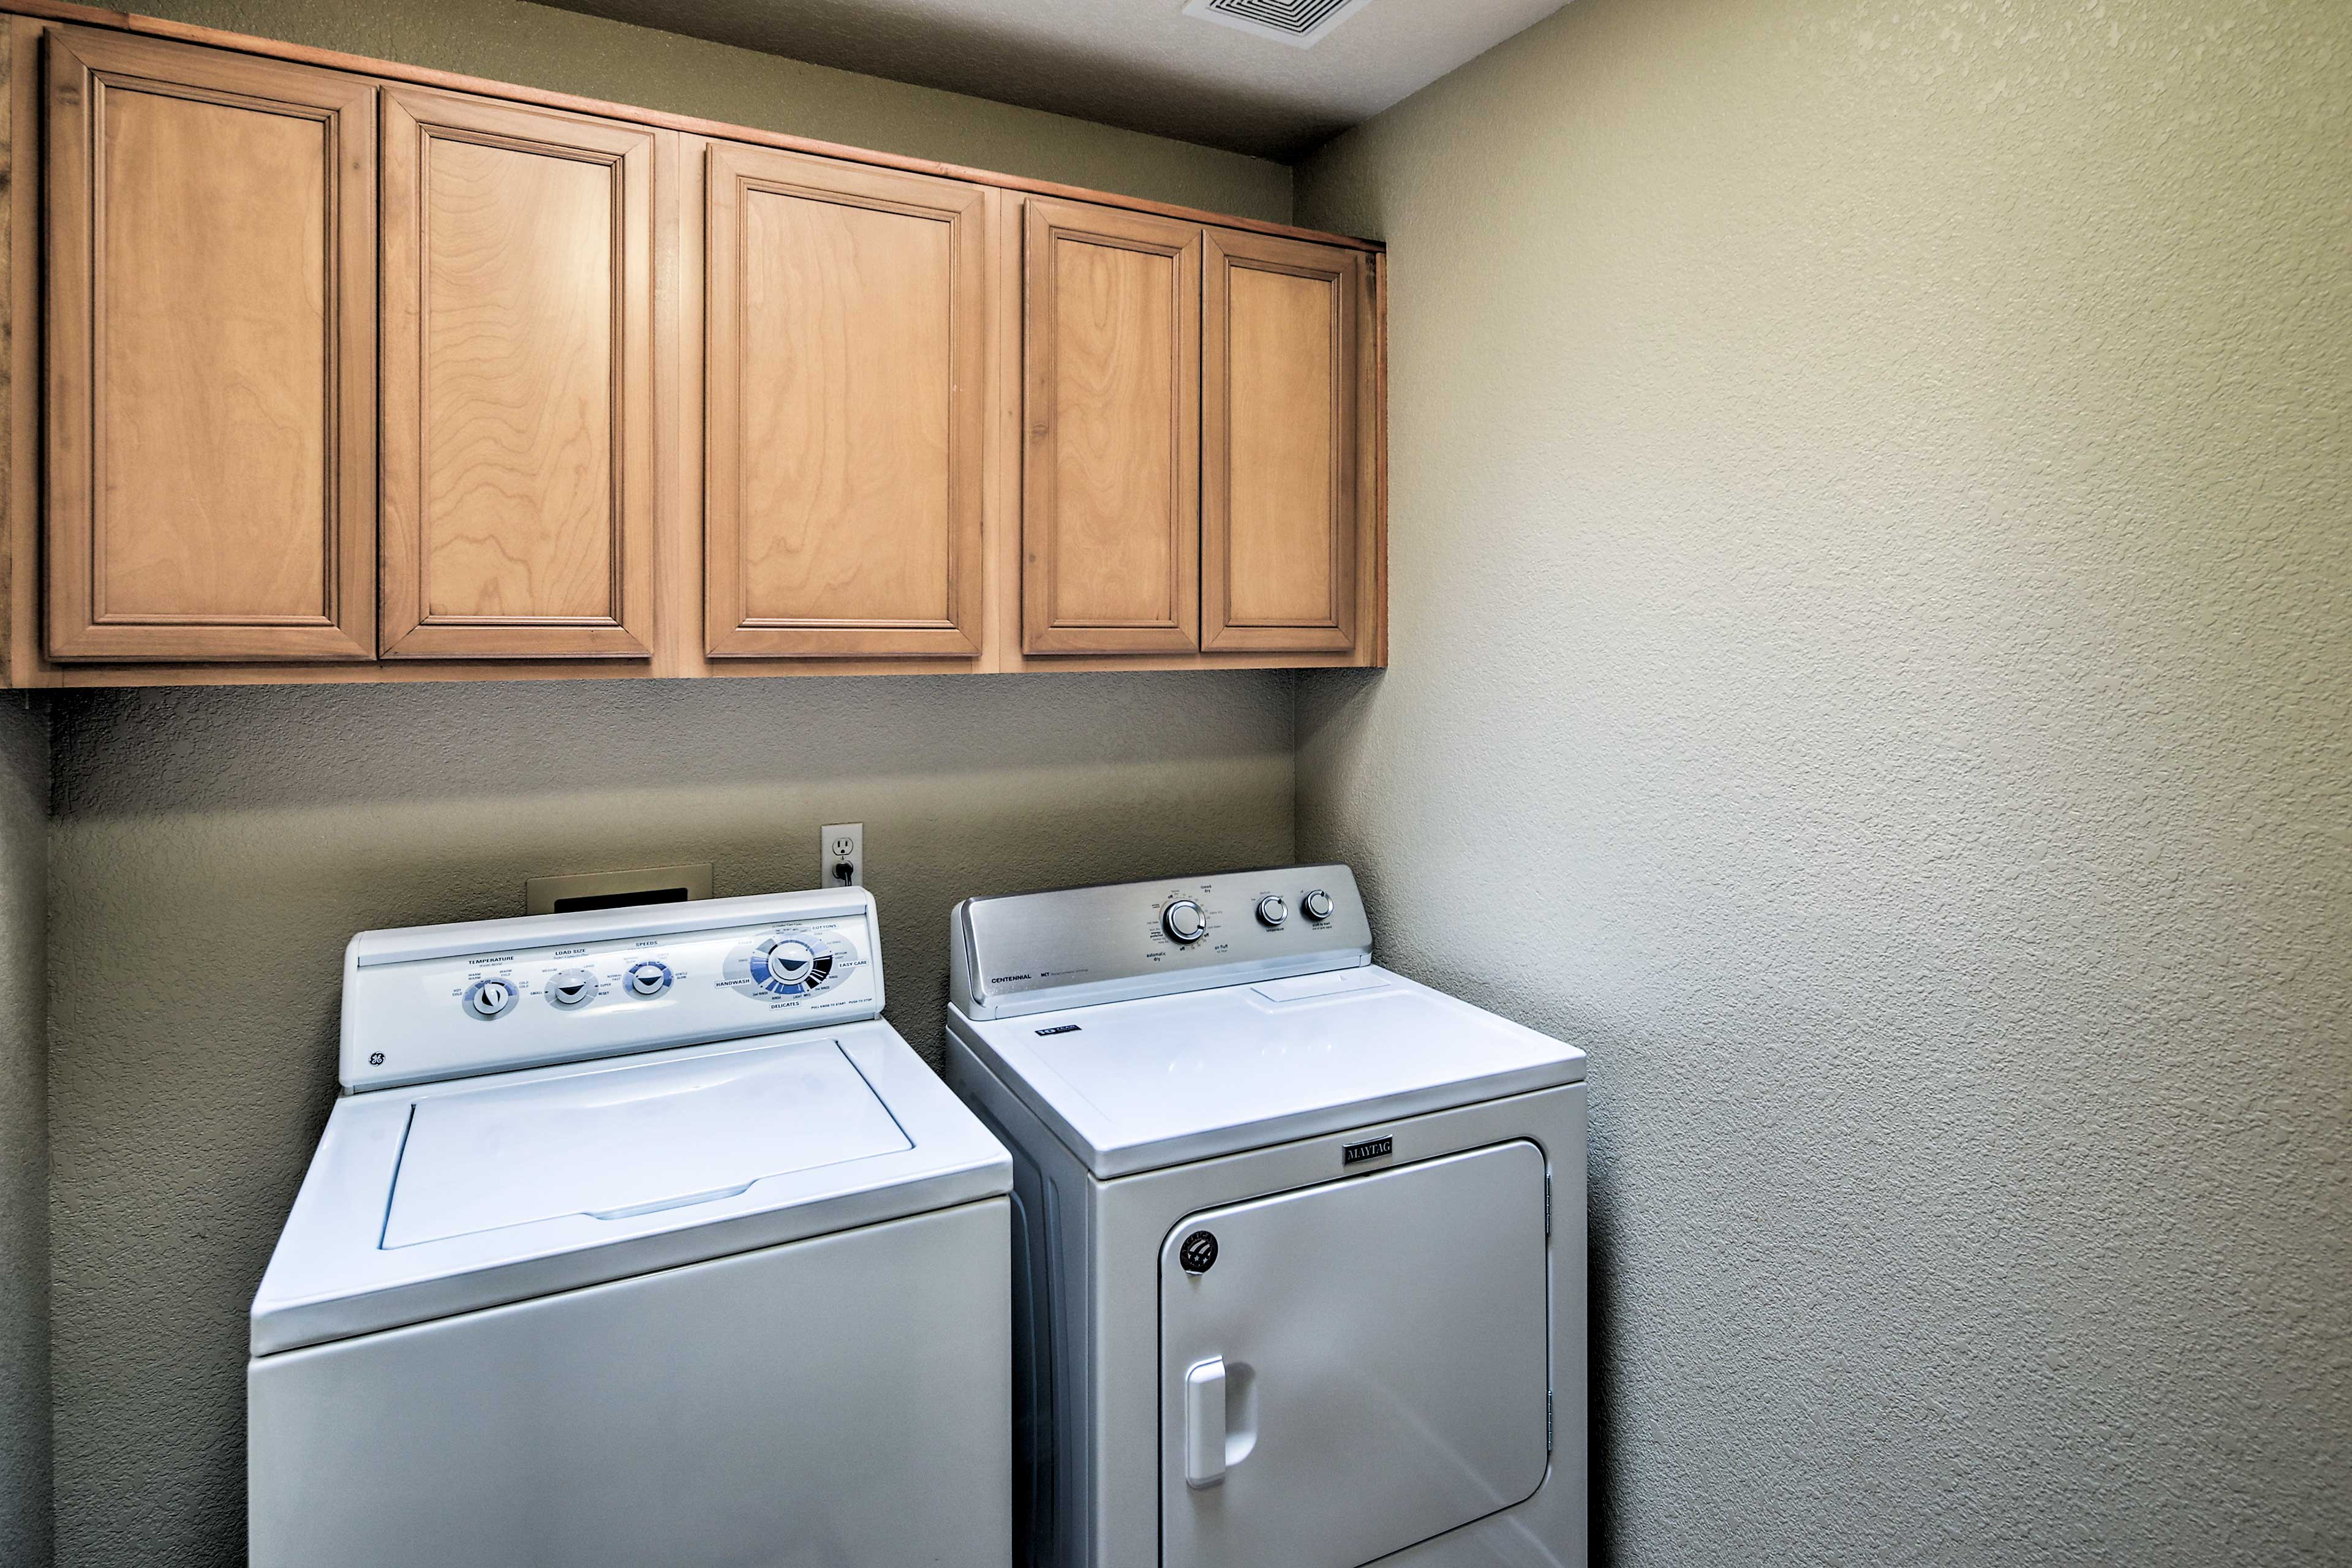 Keep your clothes fresh & clean with the in-unit laundry machines.